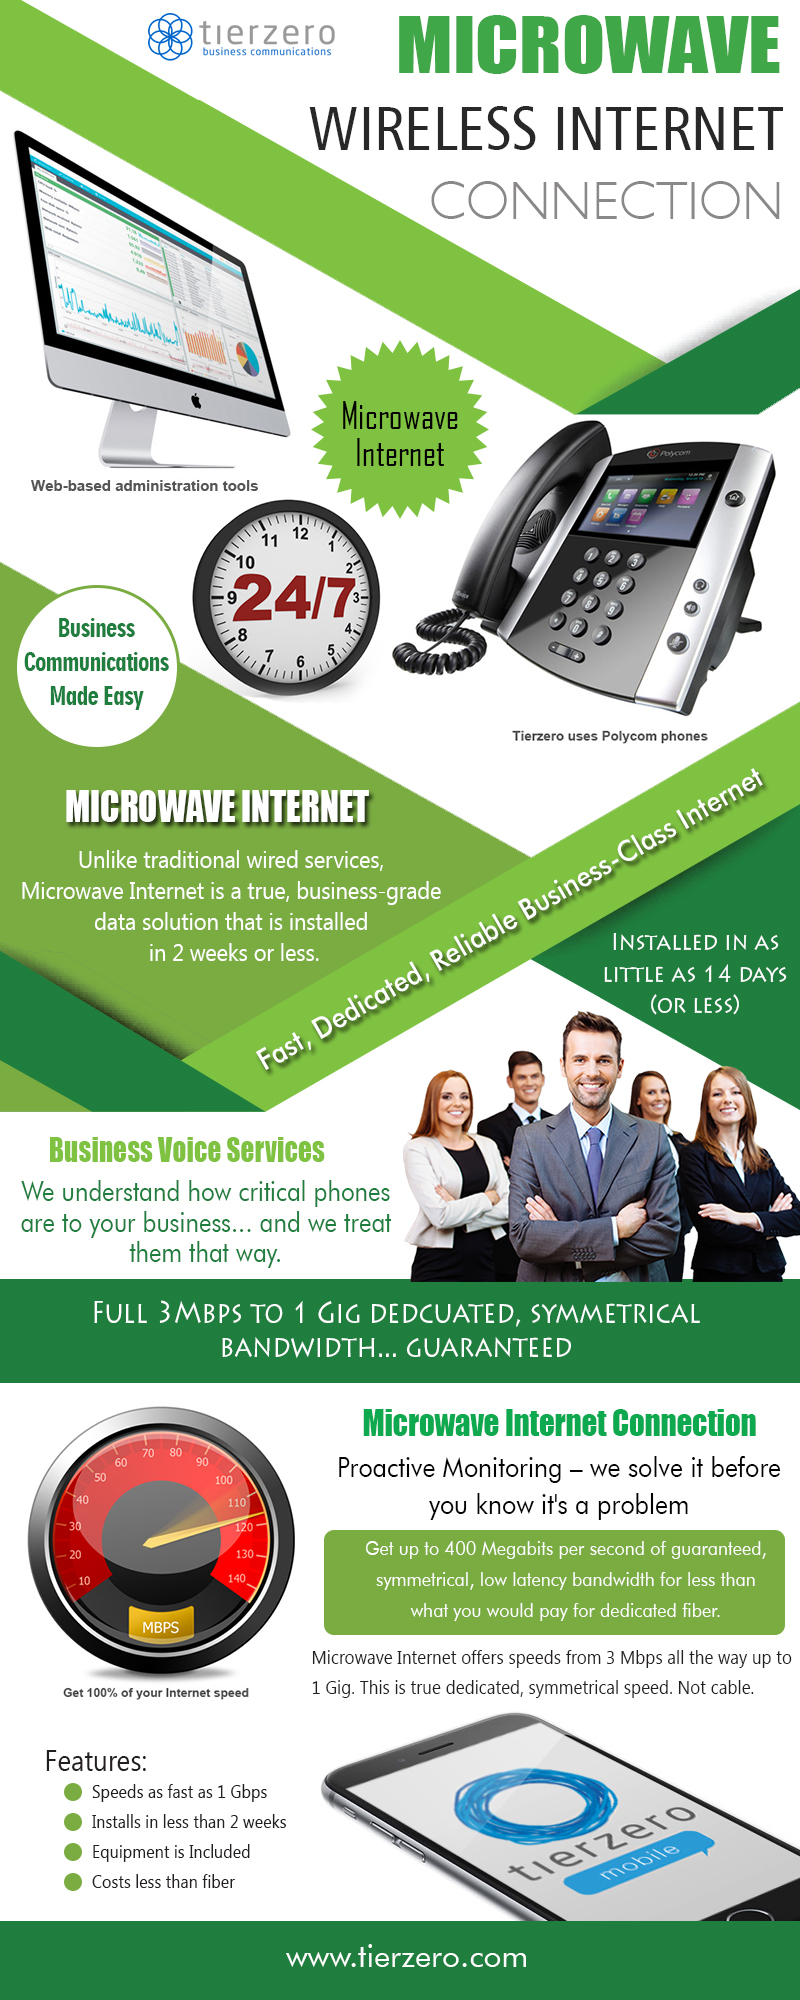 Microwave Wireless Internet Connection